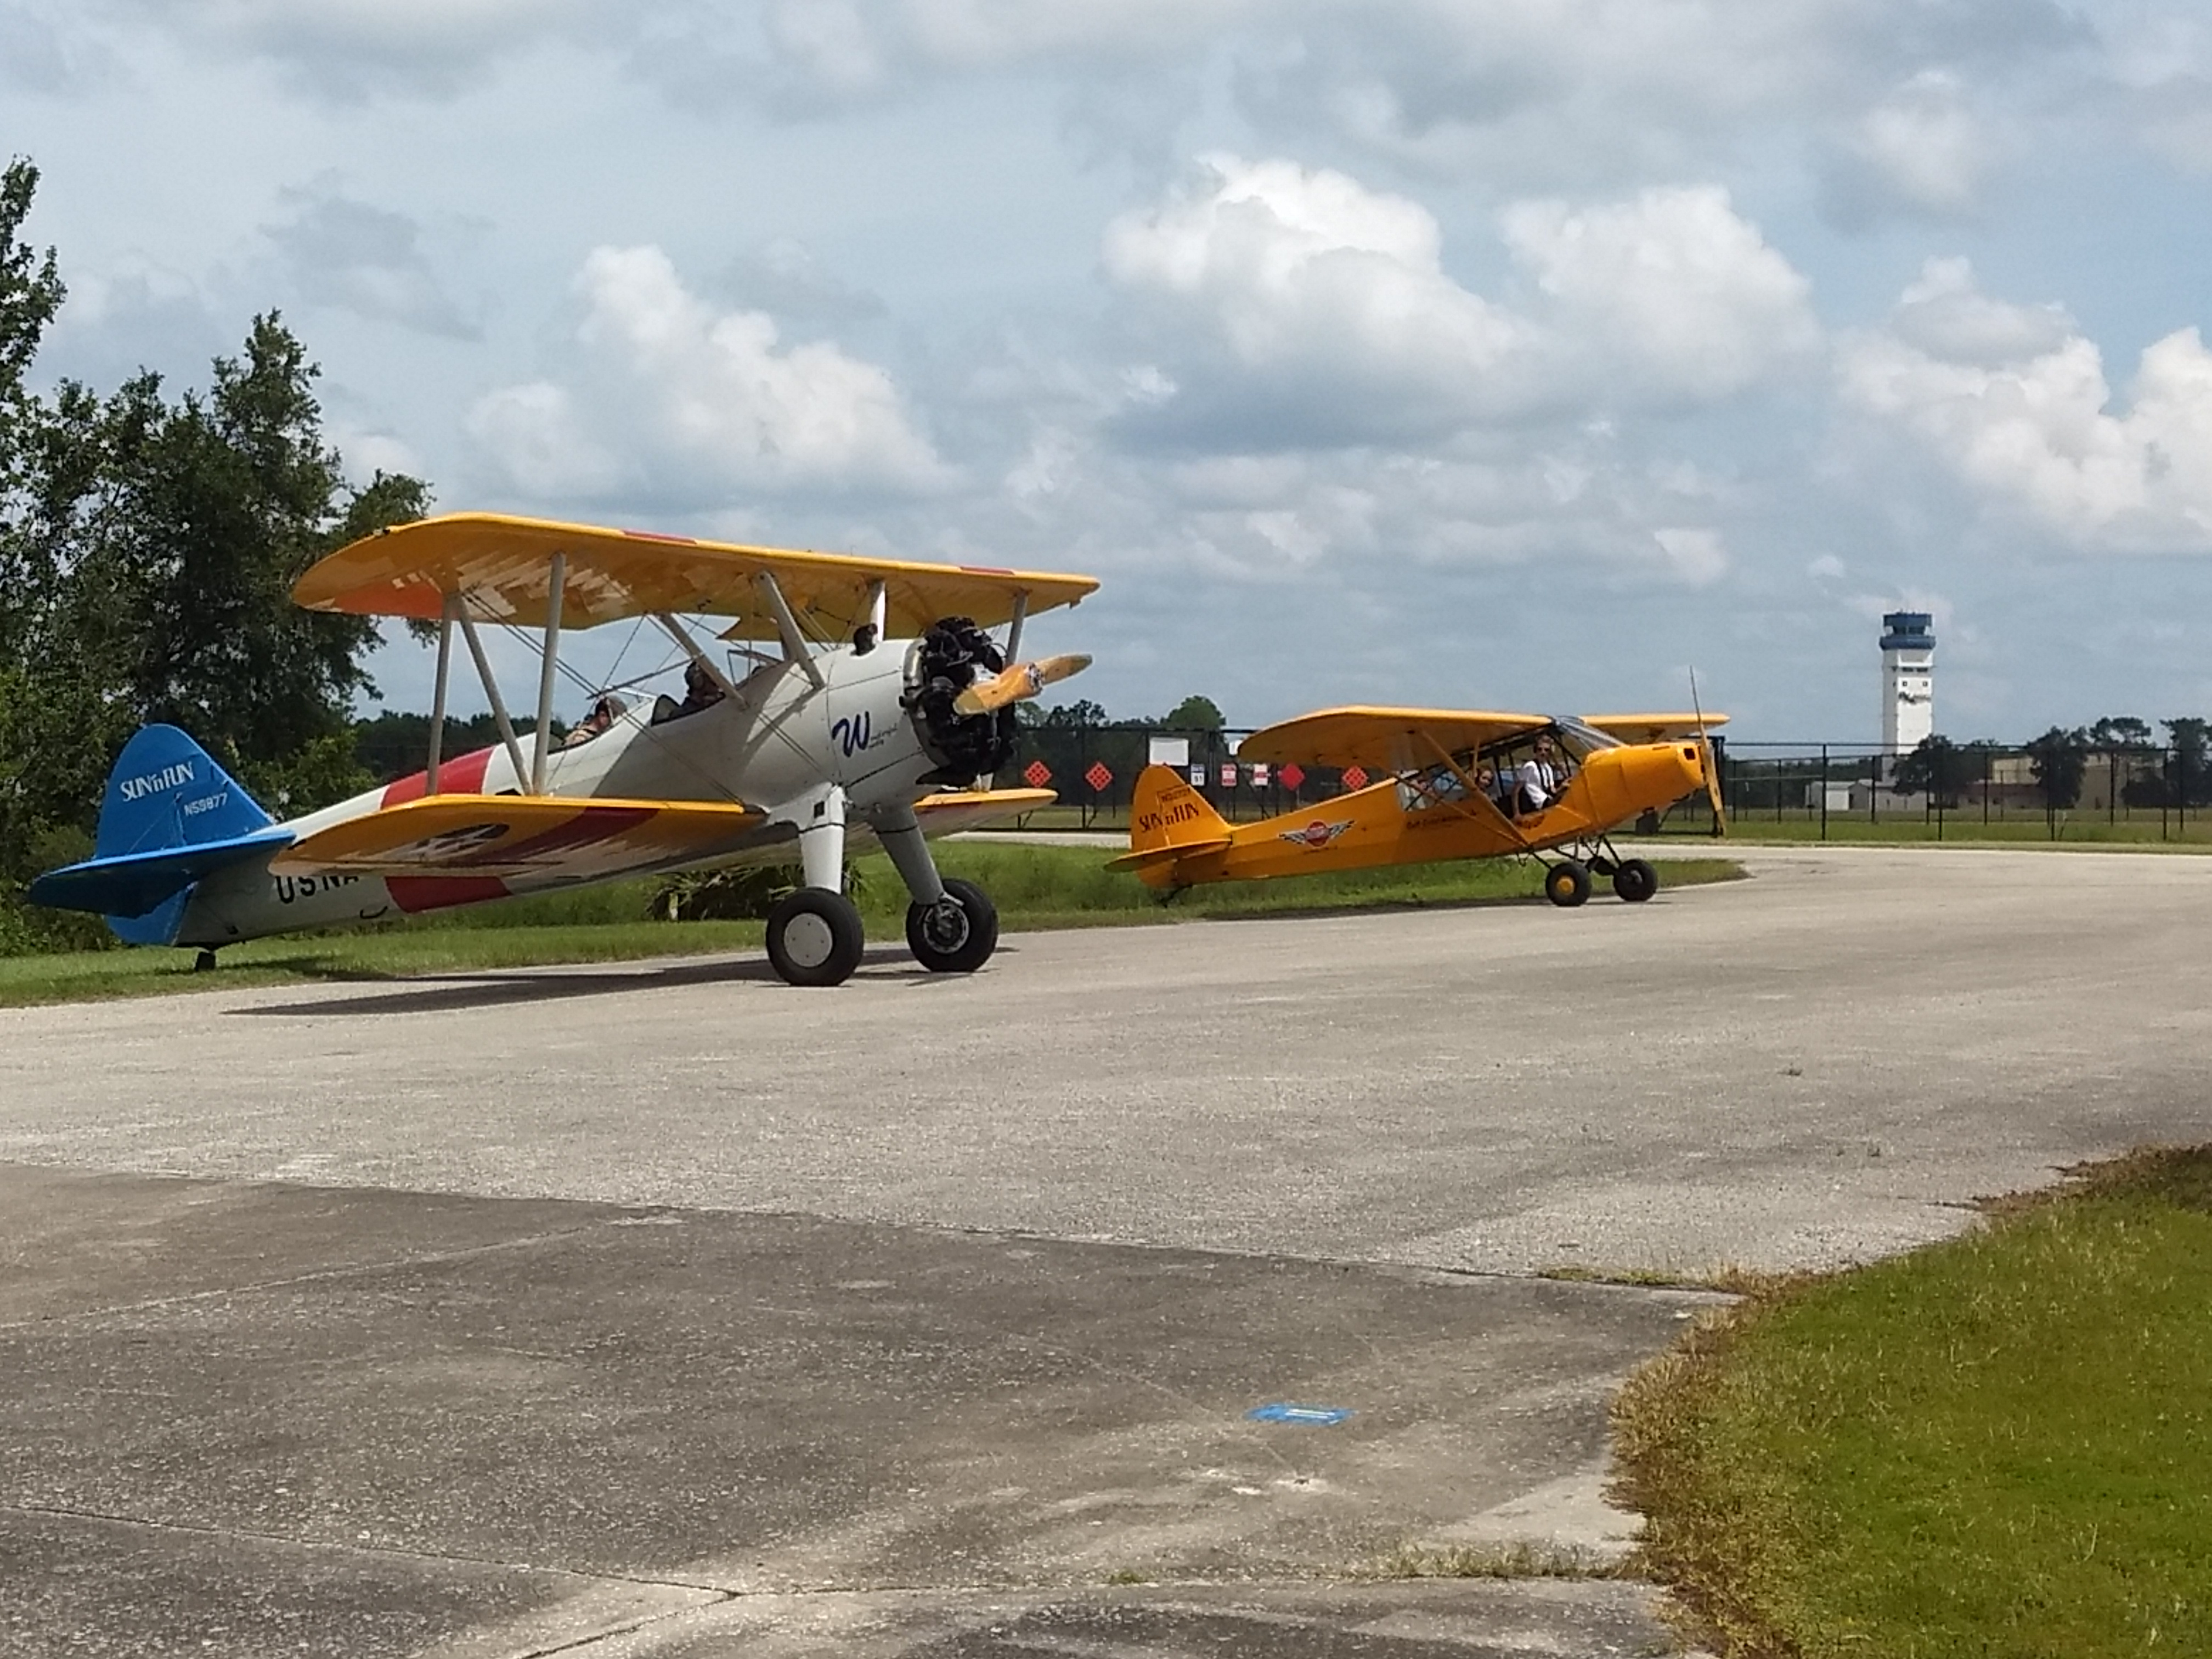 El Lakeland Aero Club y SUN 'n FUN Fly-In despegue para el Triple Tree Fly-In